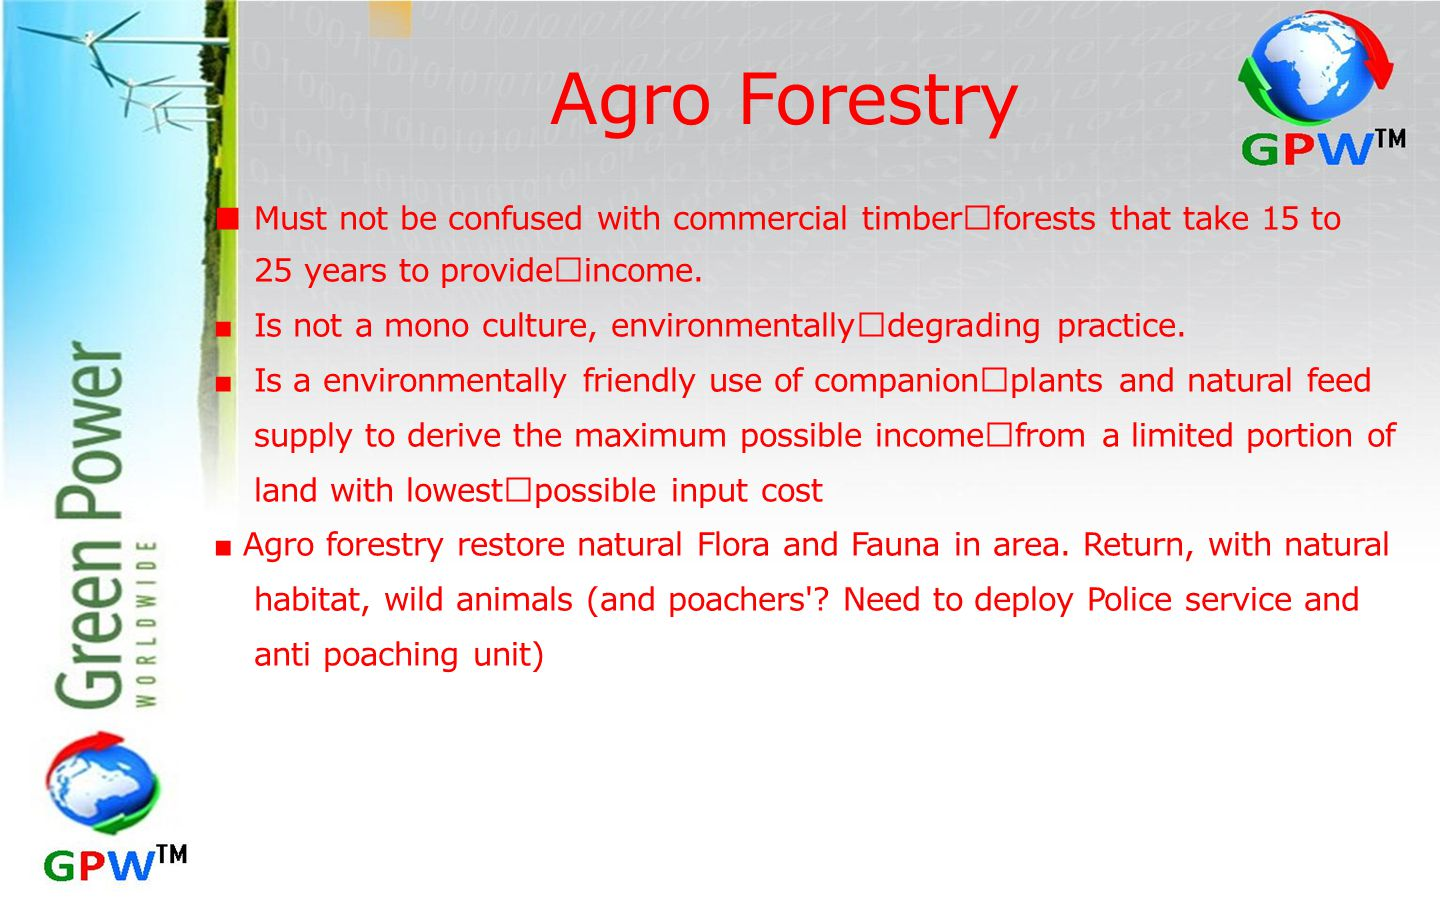 Agro Forestry ■ Must not be confused with commercial timber forests that take 15 to 25 years to provide income.